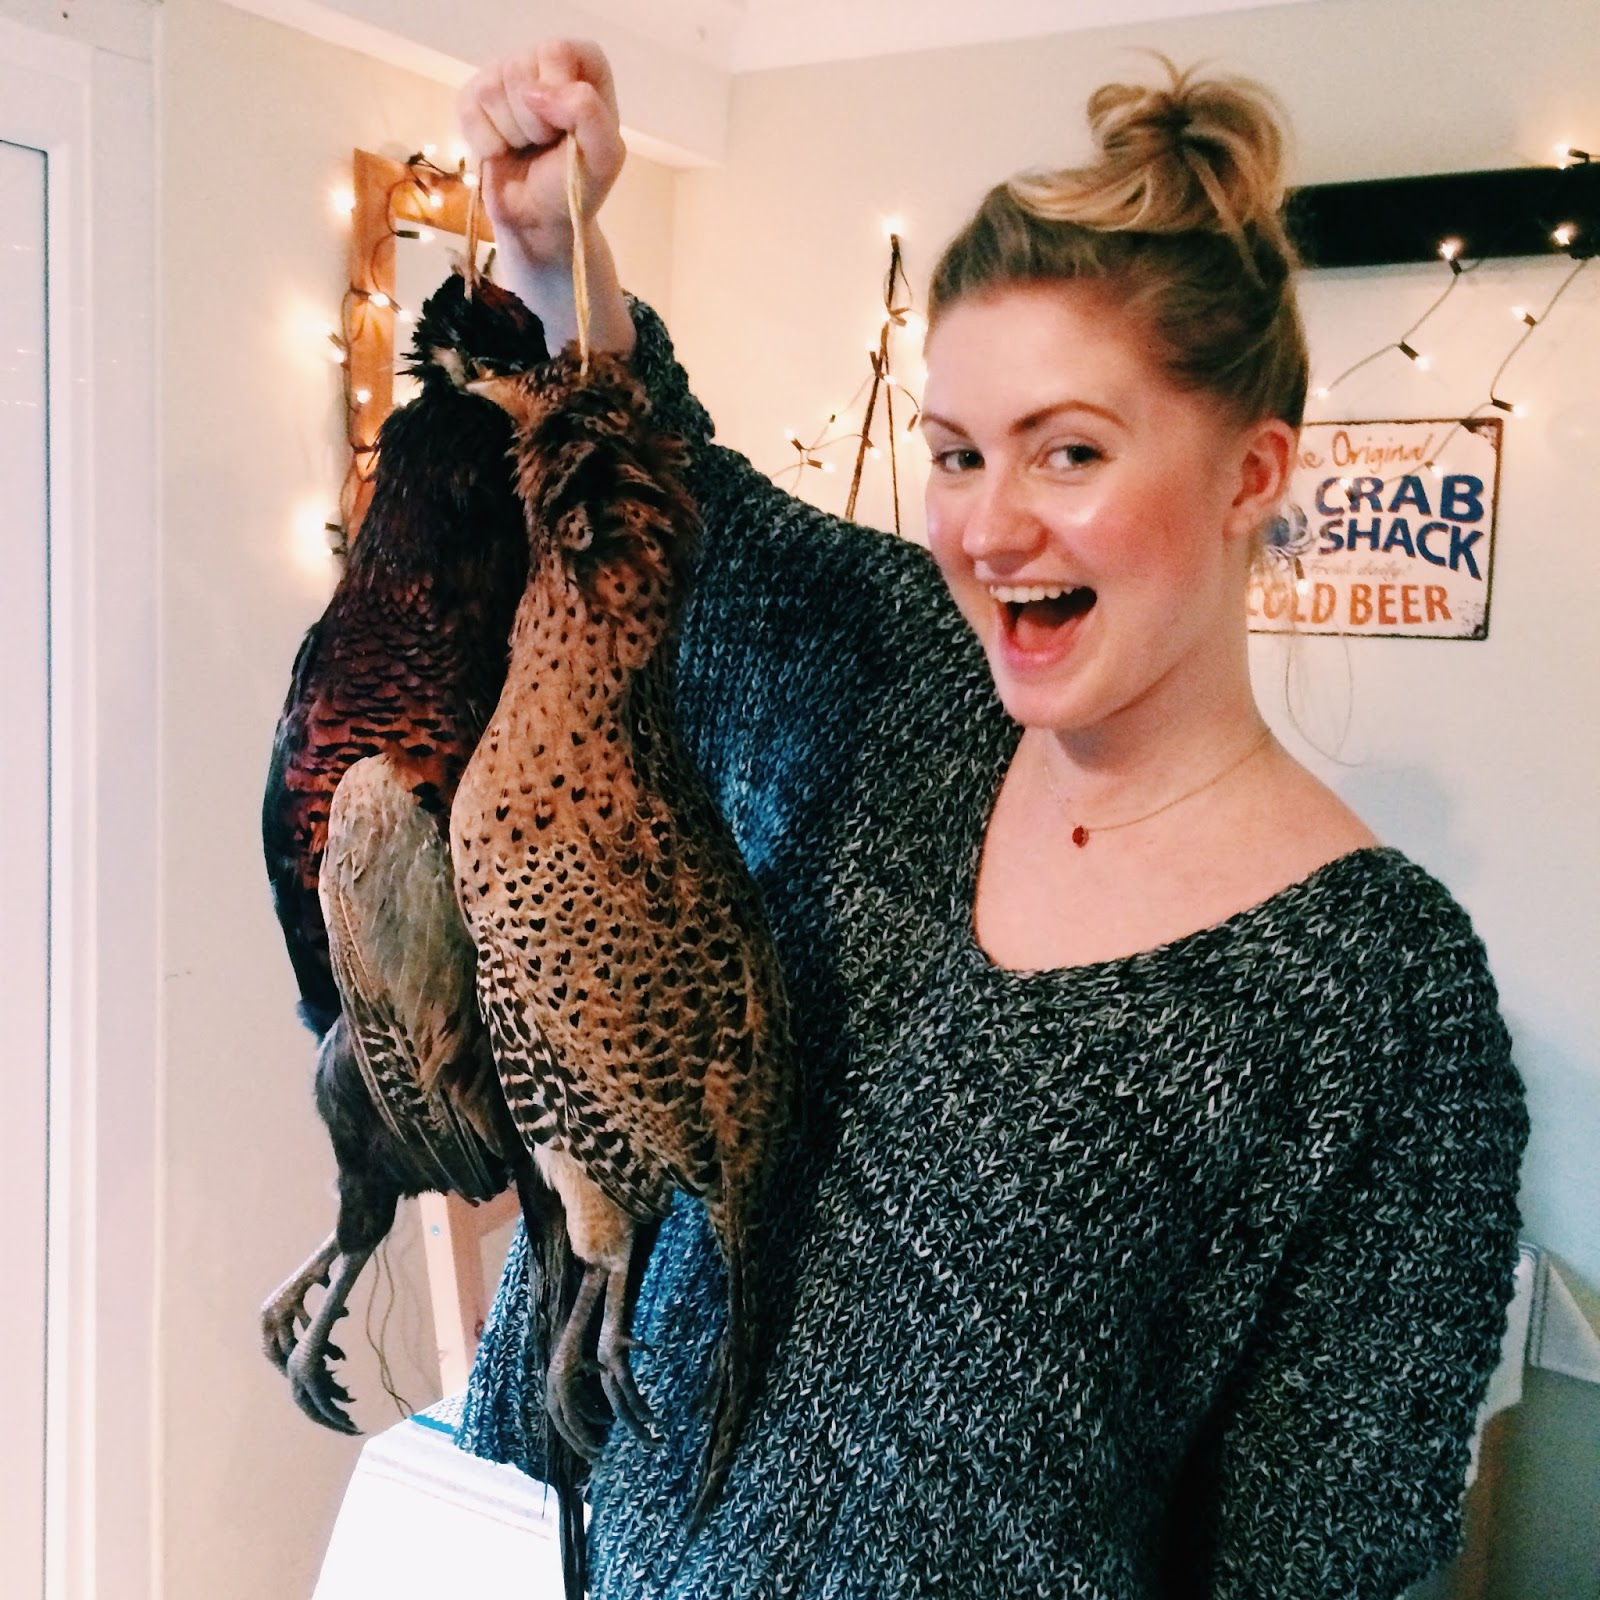 Dalry Rose blog, Hampshire pheasants, what makes a house a home